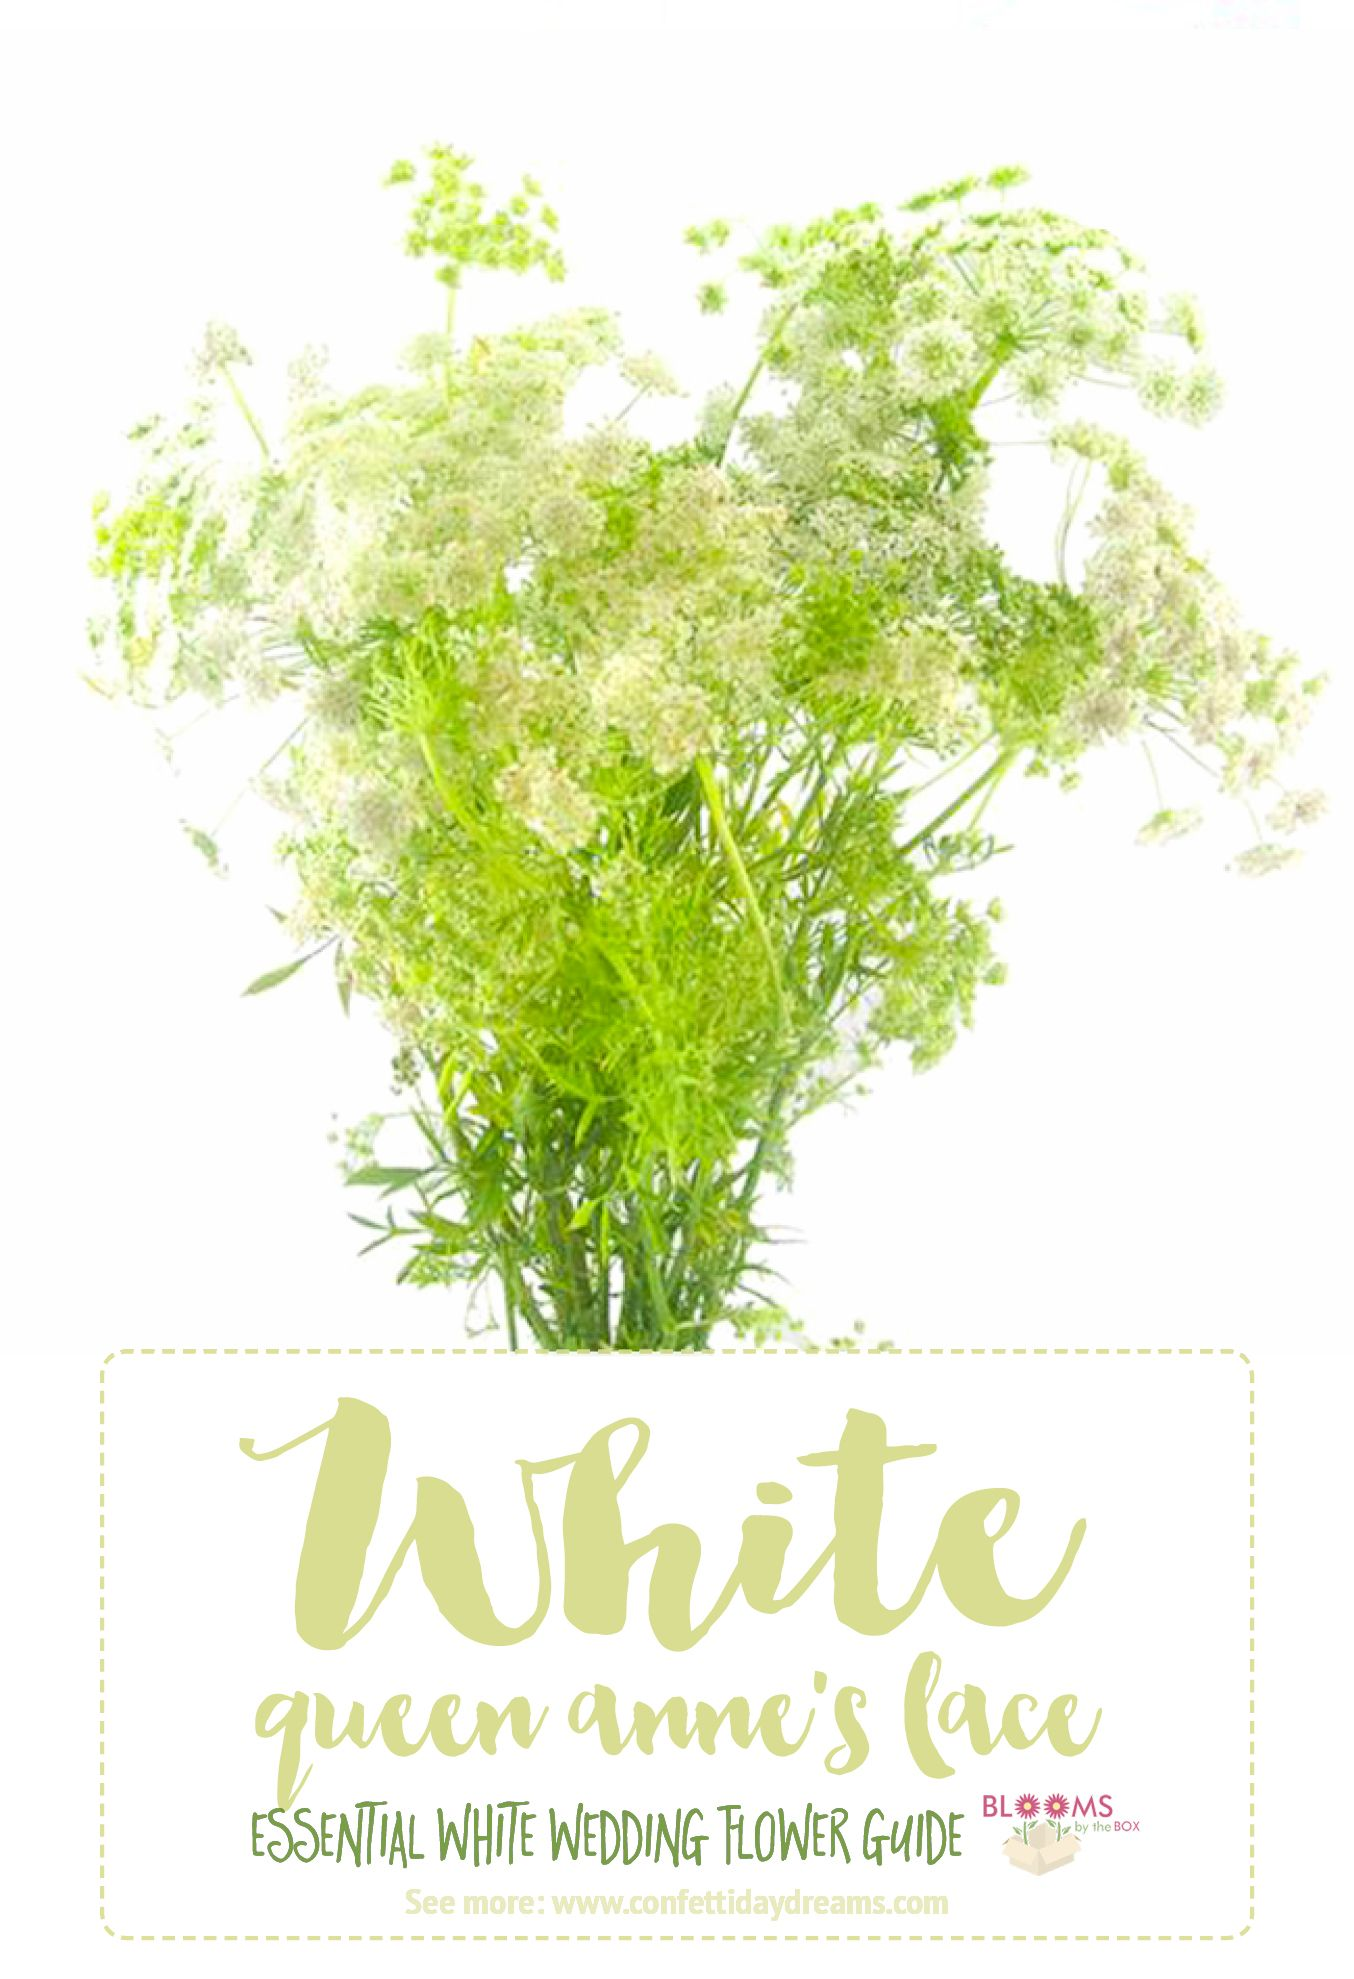 Essential White Wedding Flower Guide Names Types Pics